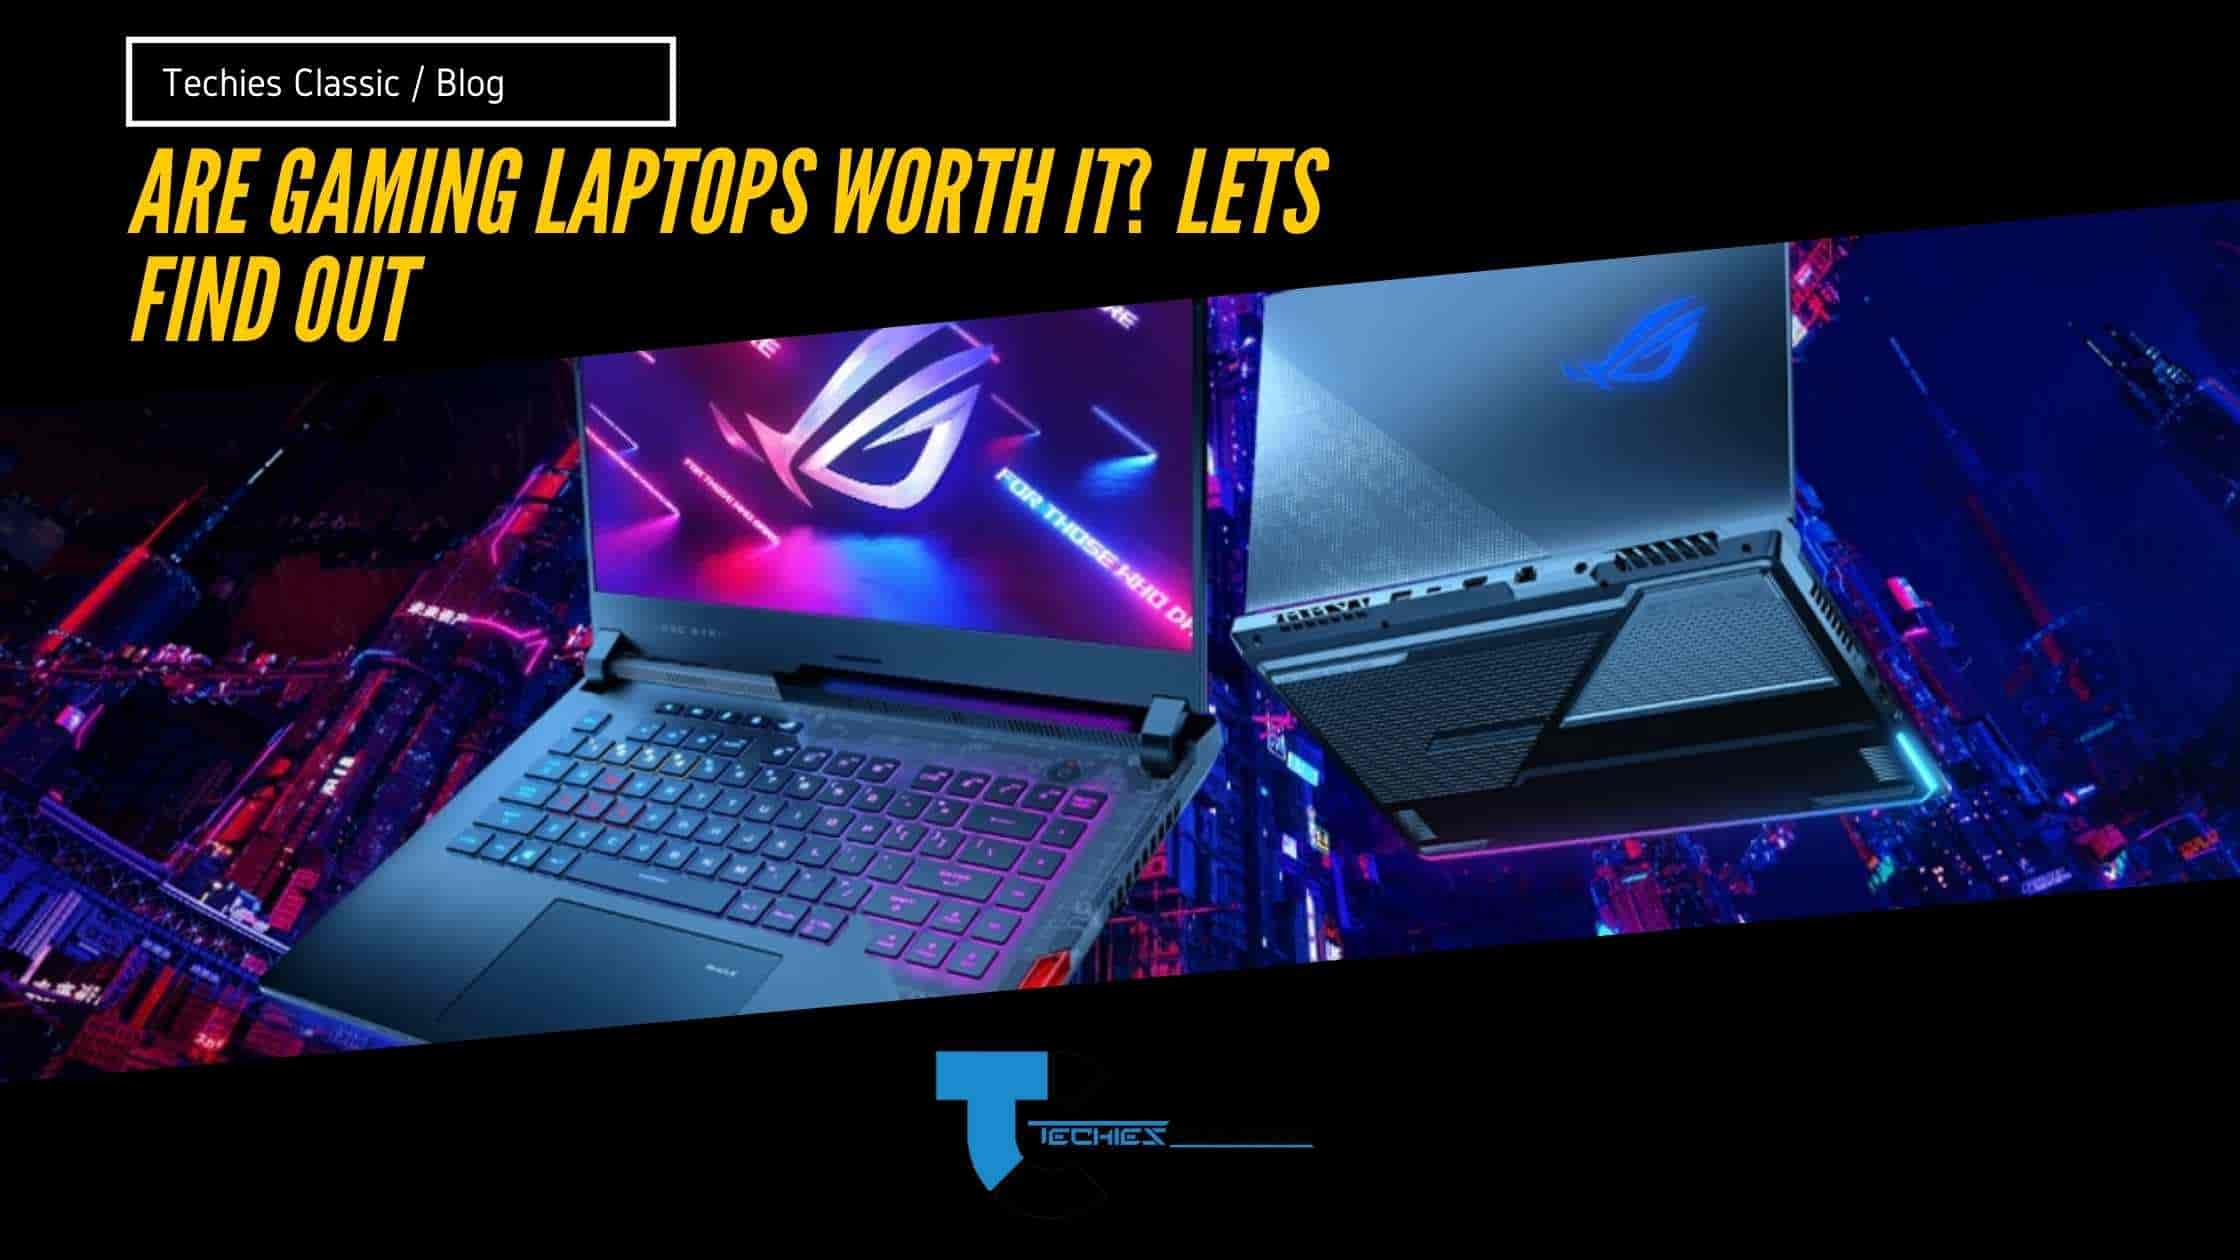 Are gaming laptops worth it? Lets find out